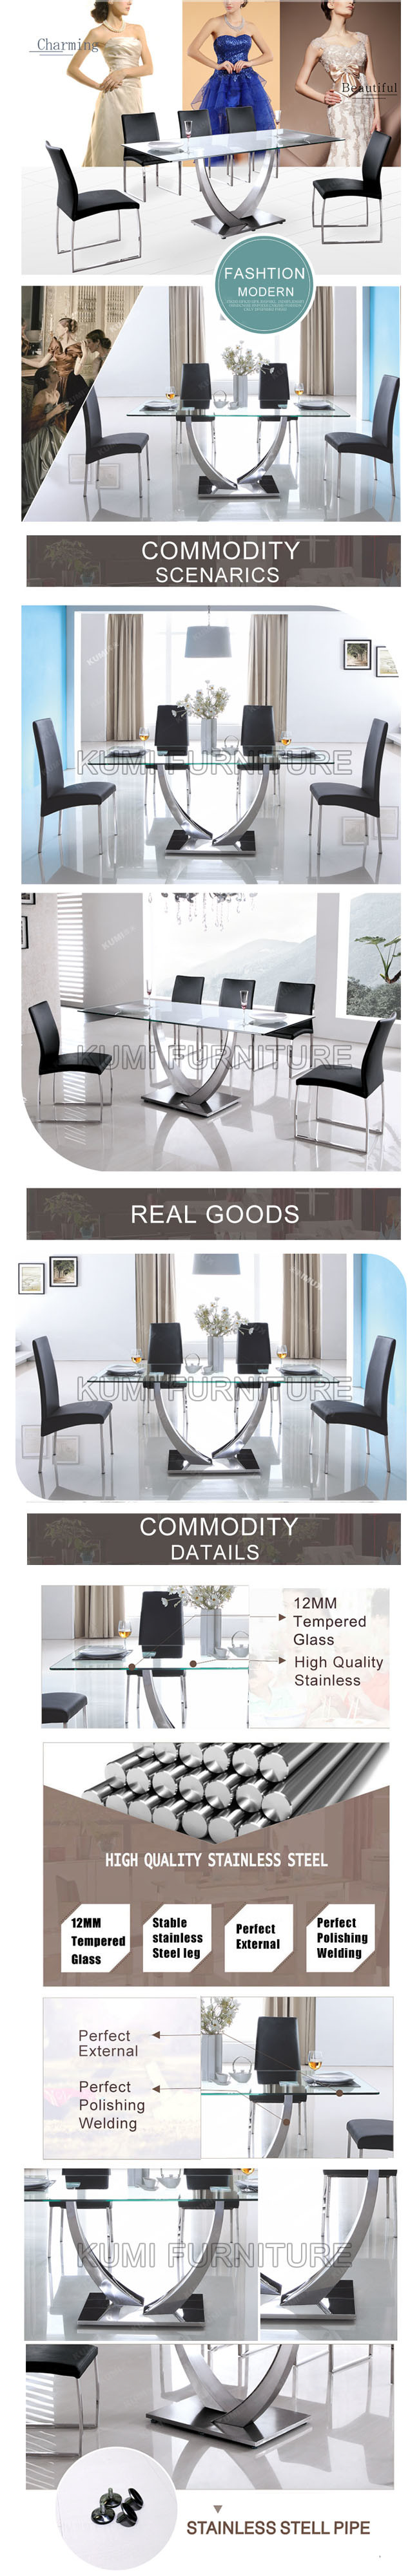 New Designs Dining Table with Stainless Steel